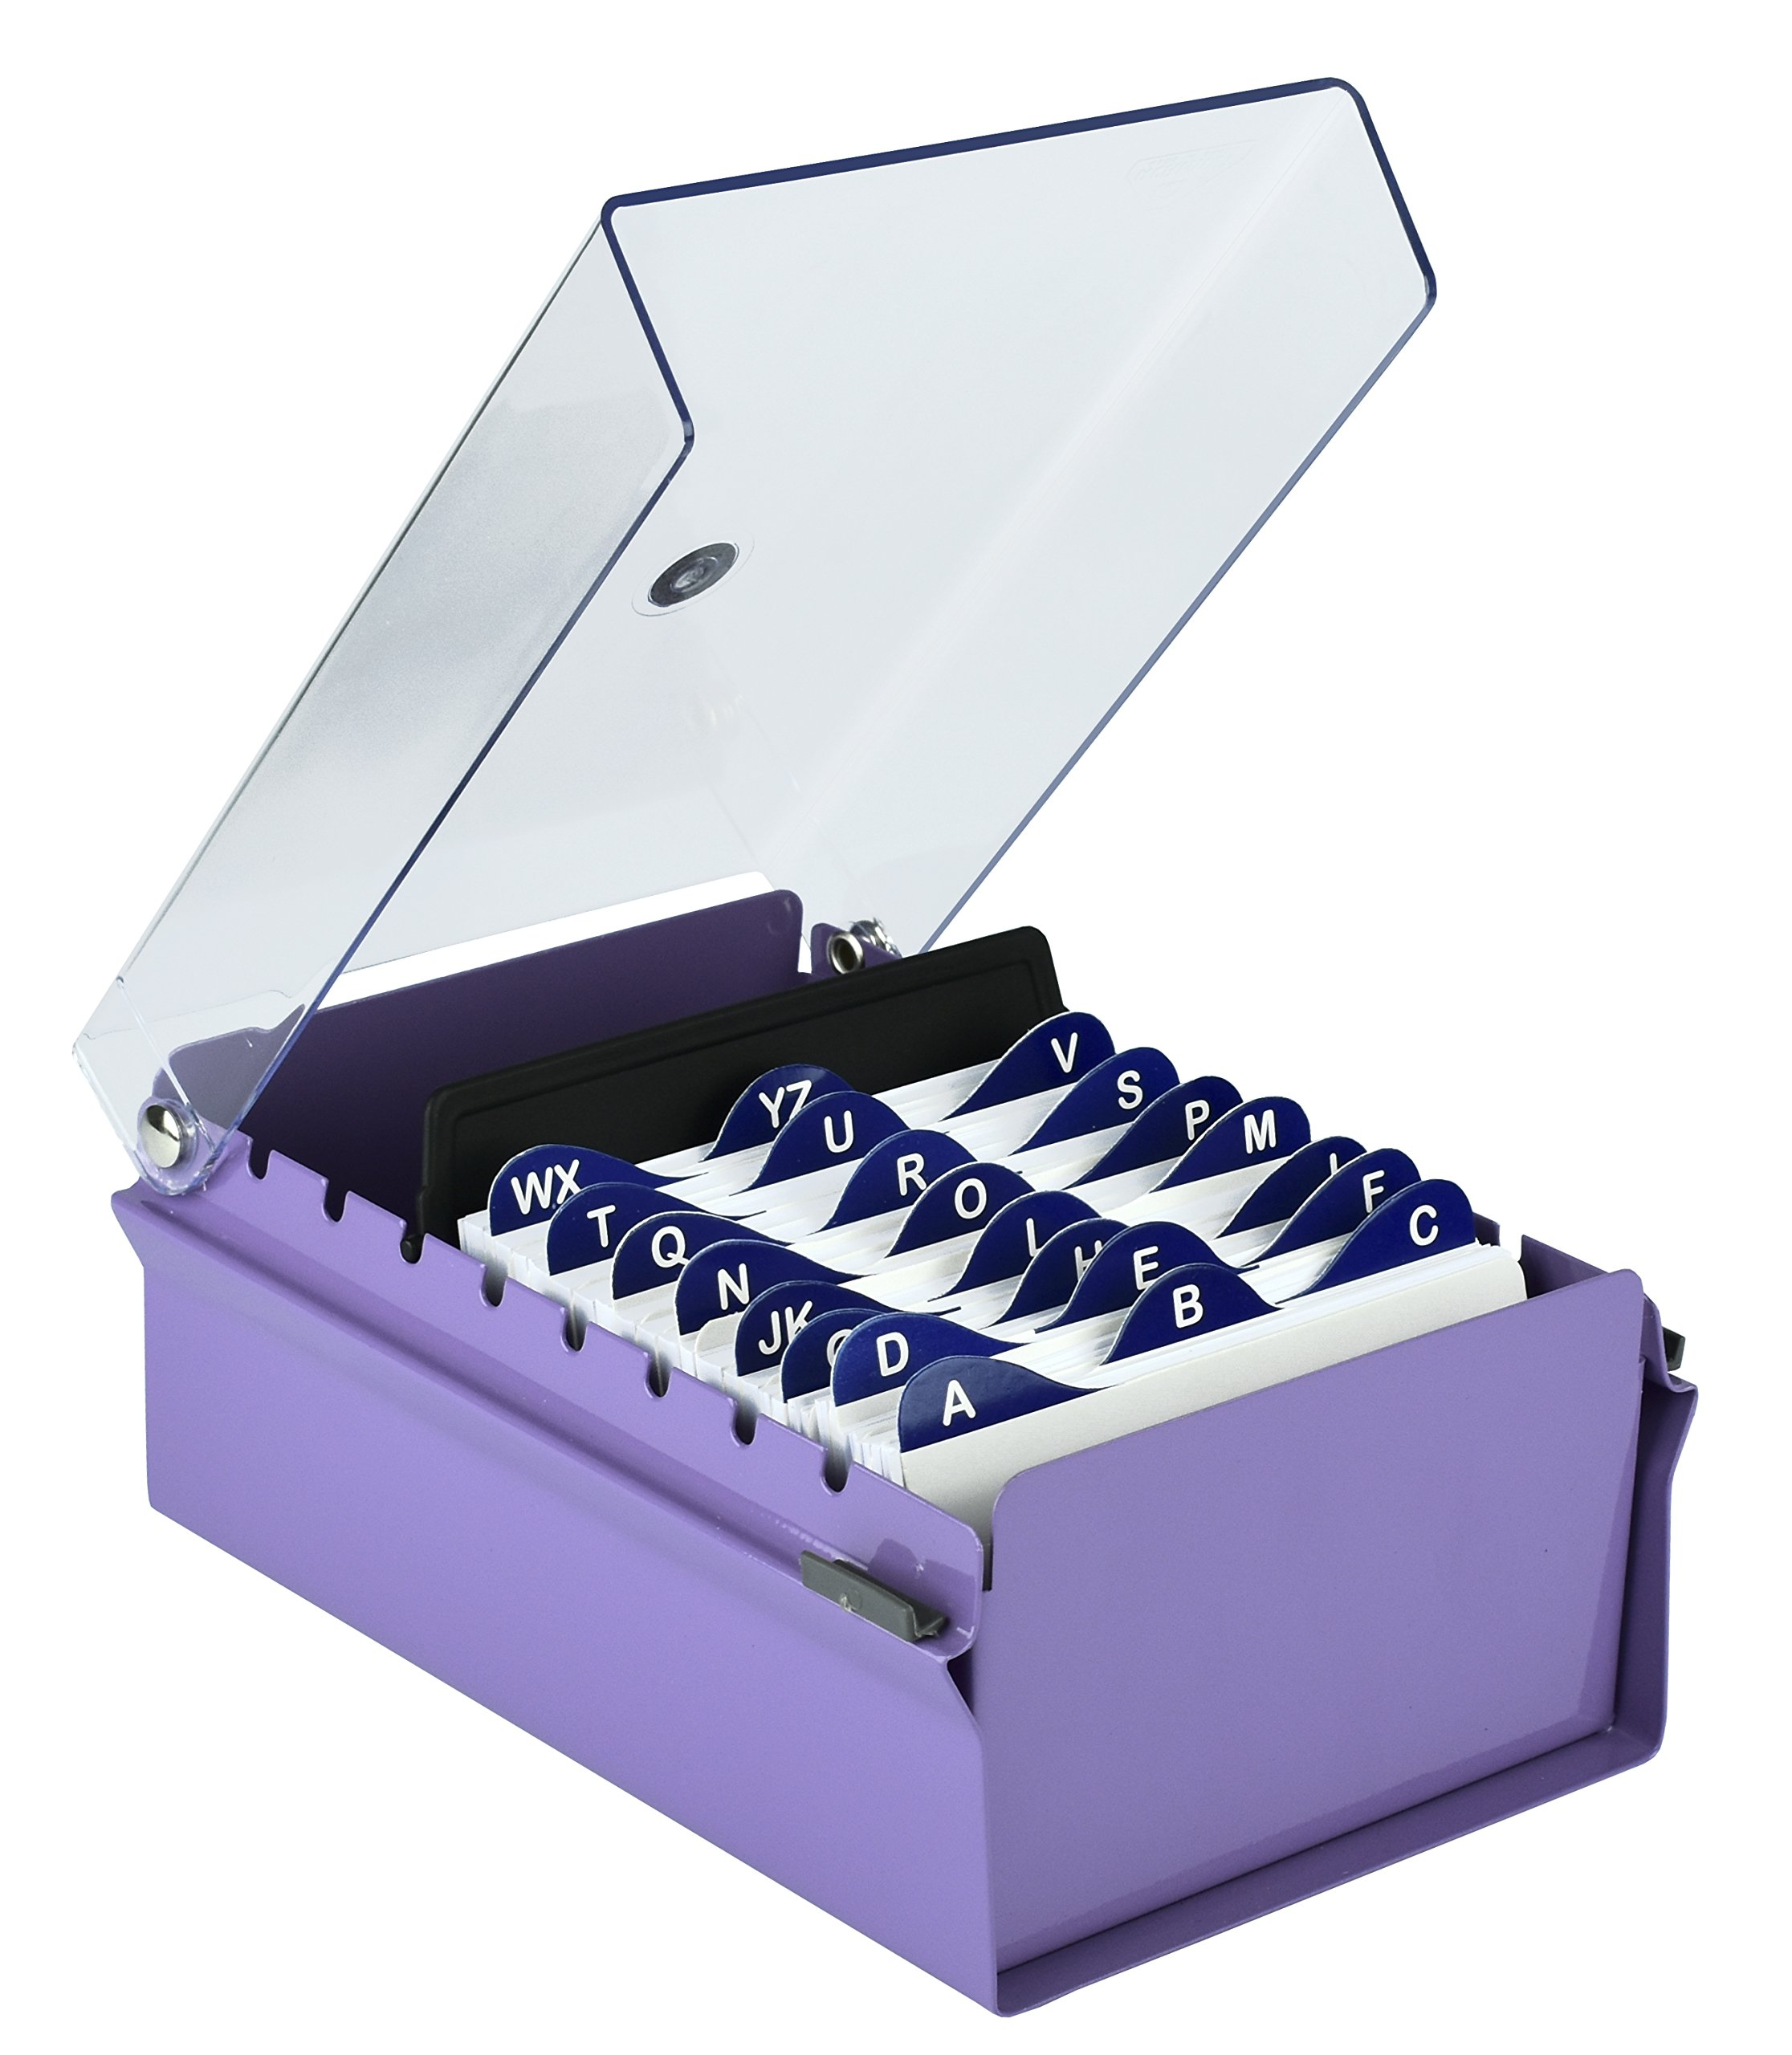 Acrimet 3 X 5 Card File Holder (Purple Color with Crystal Cover)